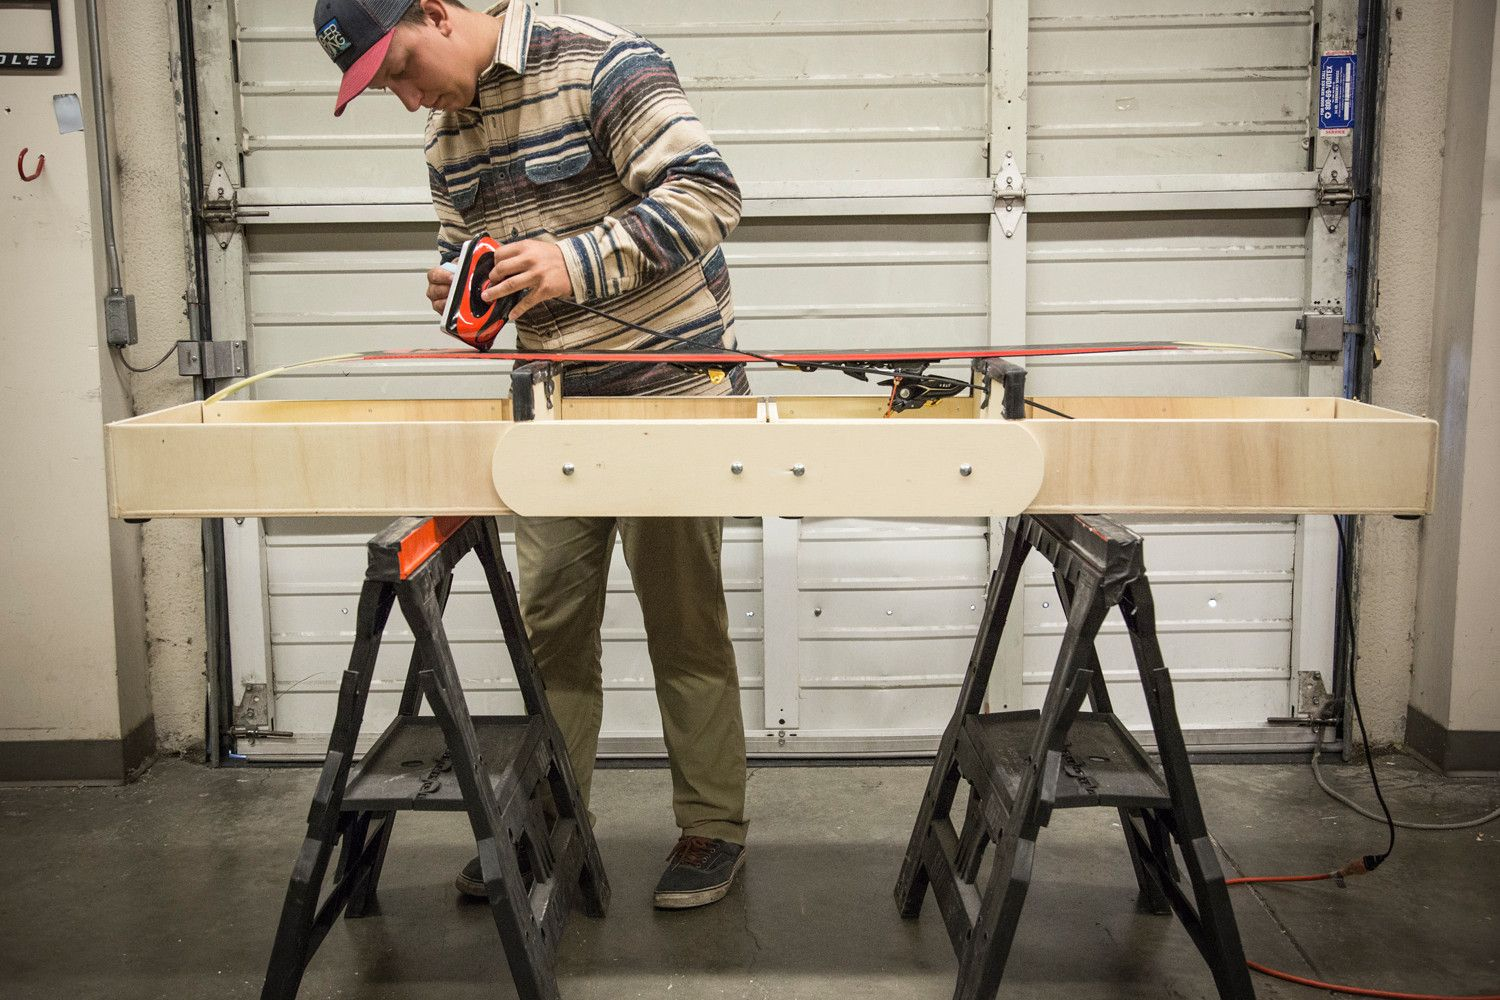 Diy how to build a portable ski or snowboard waxing table